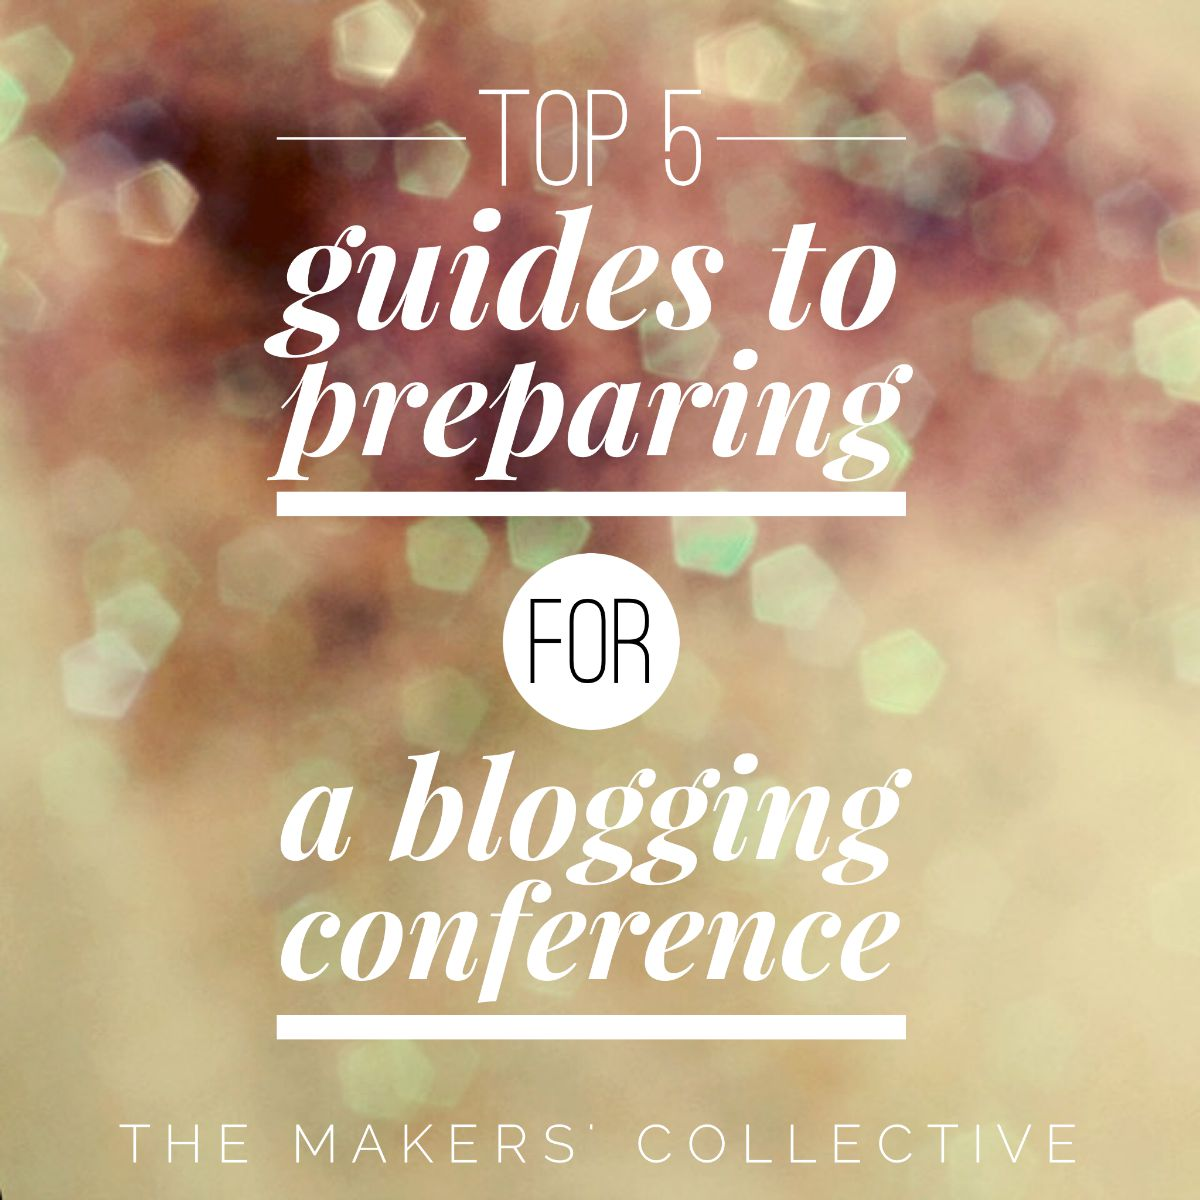 preparing for a blogging conference